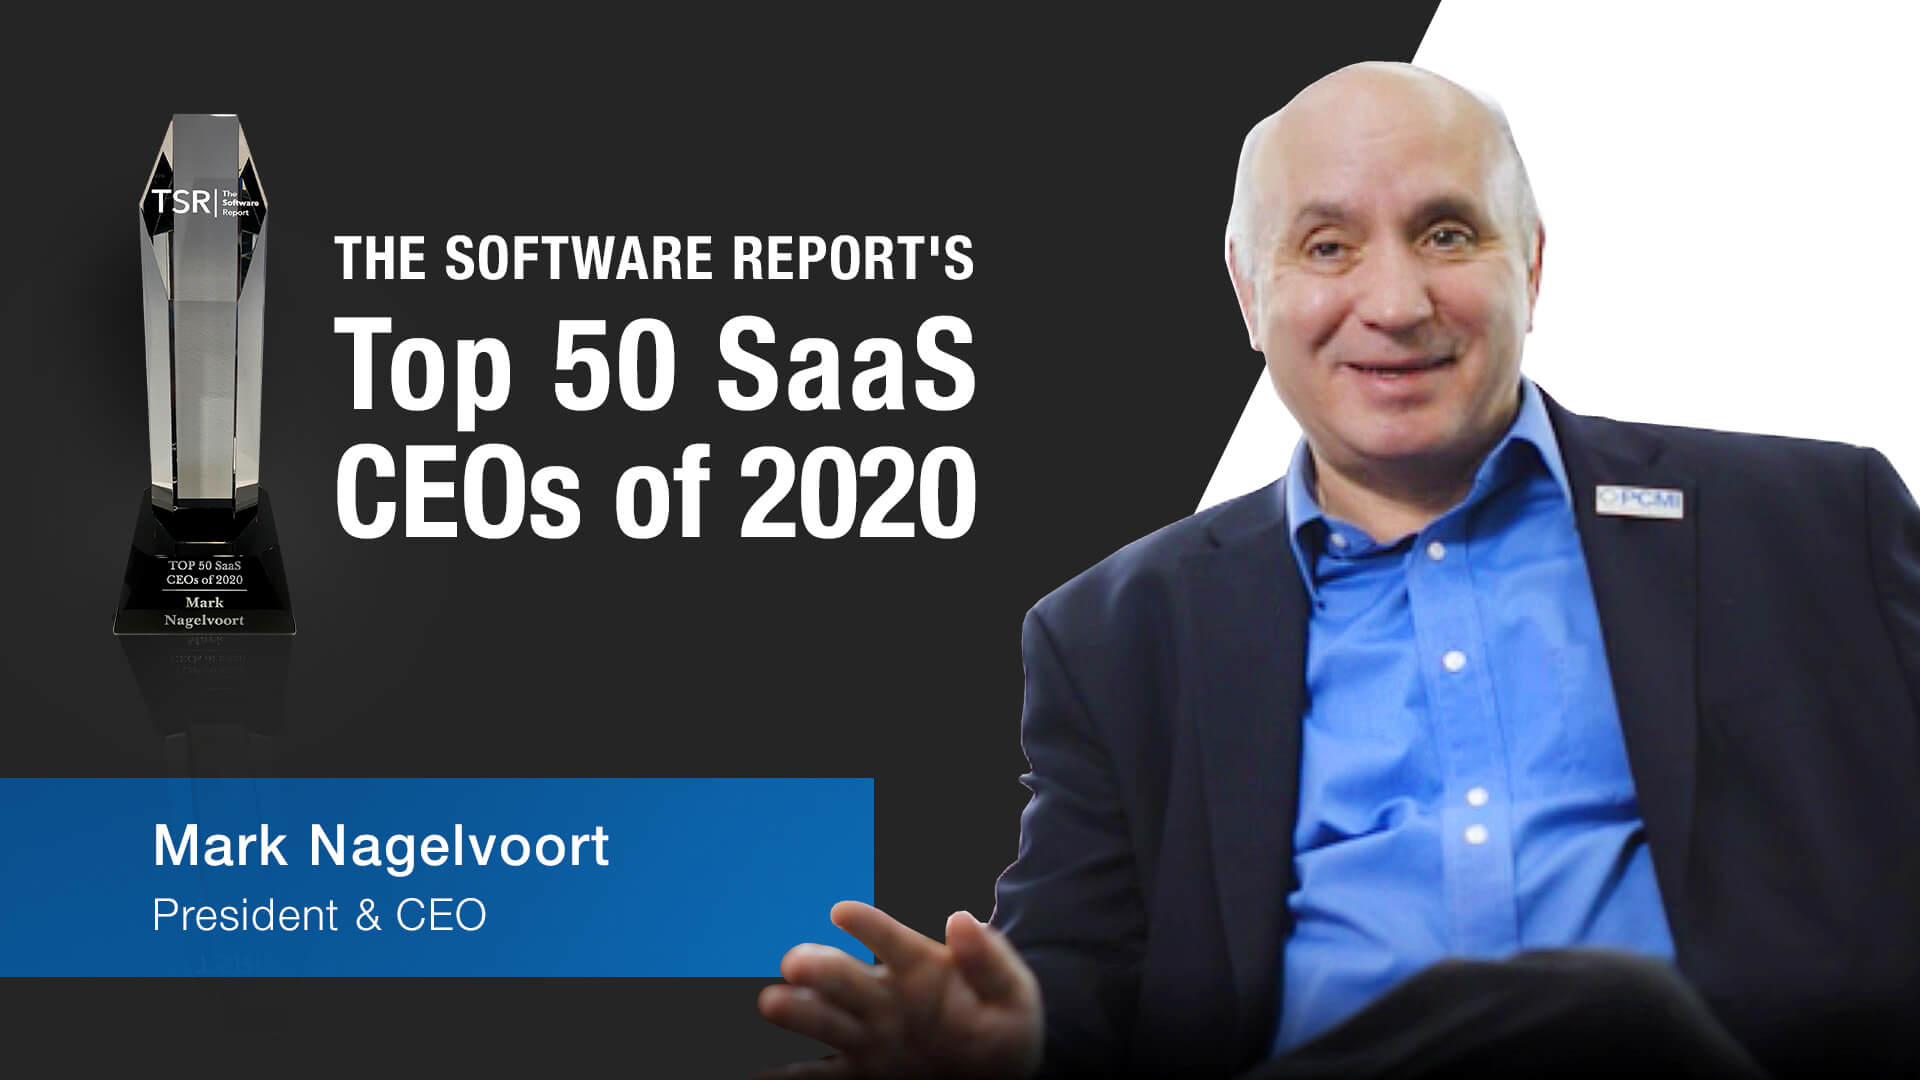 Mark named top 50 SaaS CEOs of 2020